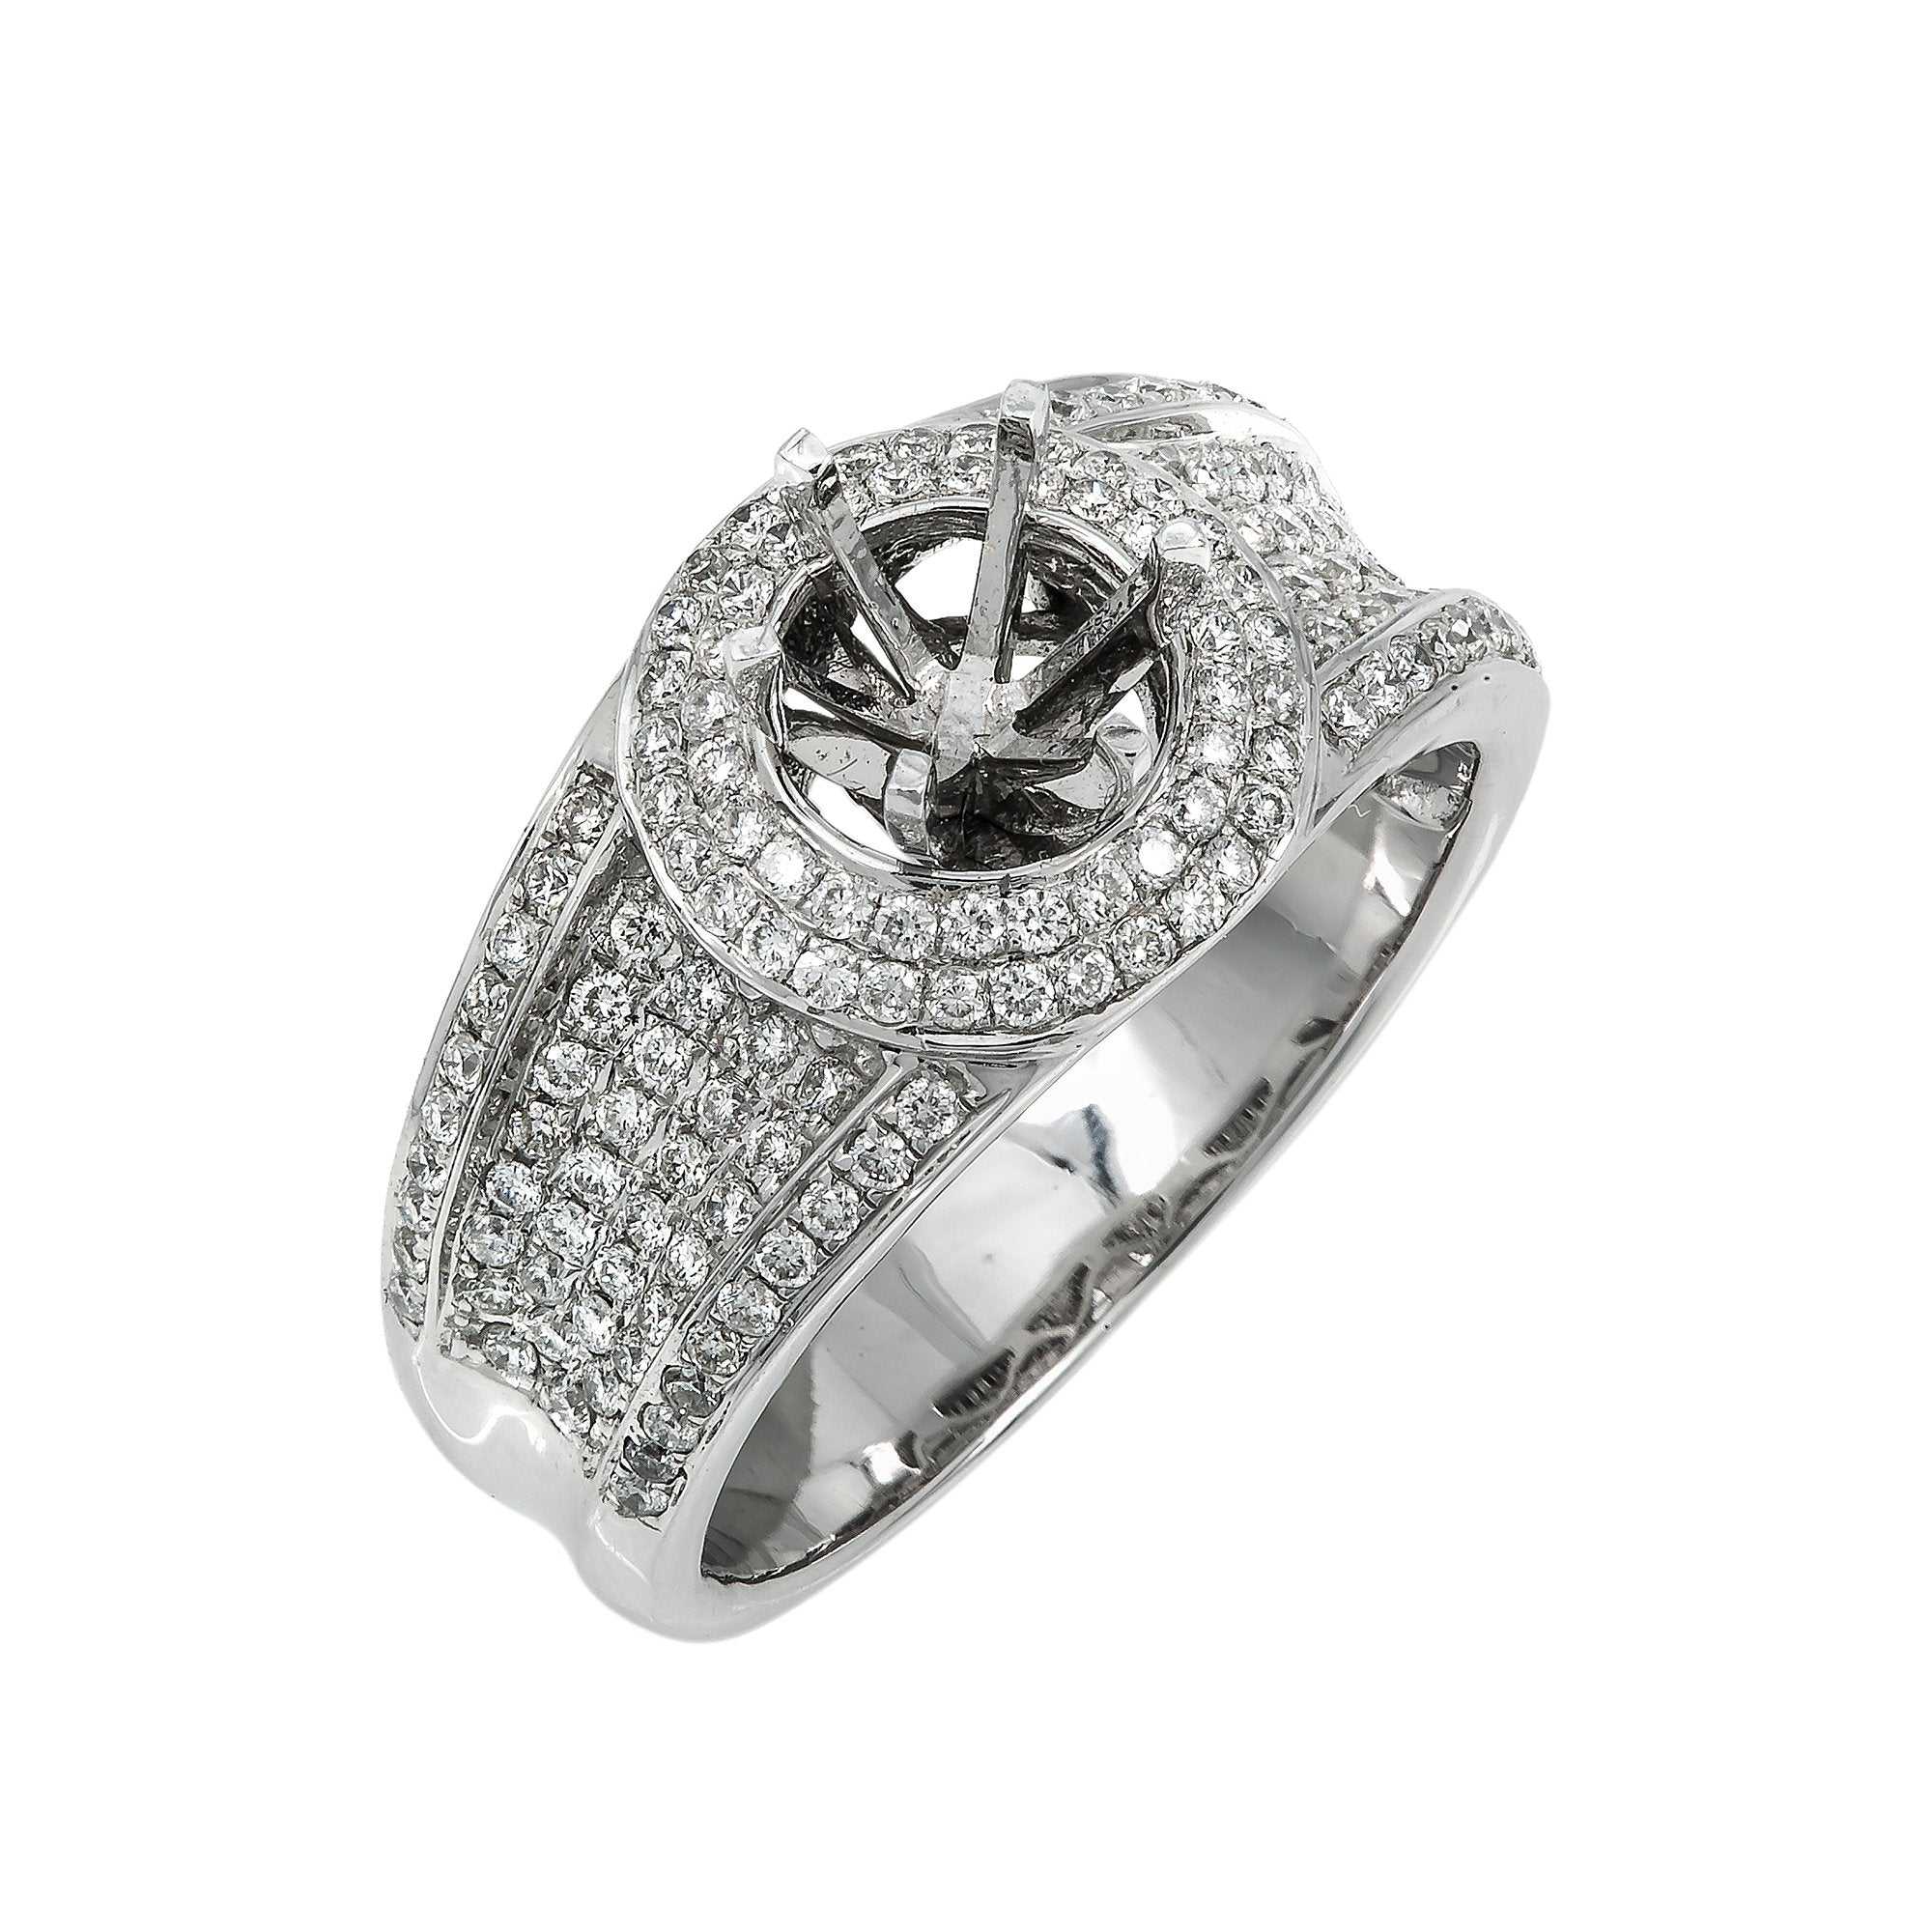 14K White Gold Diamond Engagement Semi-Mounting Women's Ring With 0.75 CT Diamonds